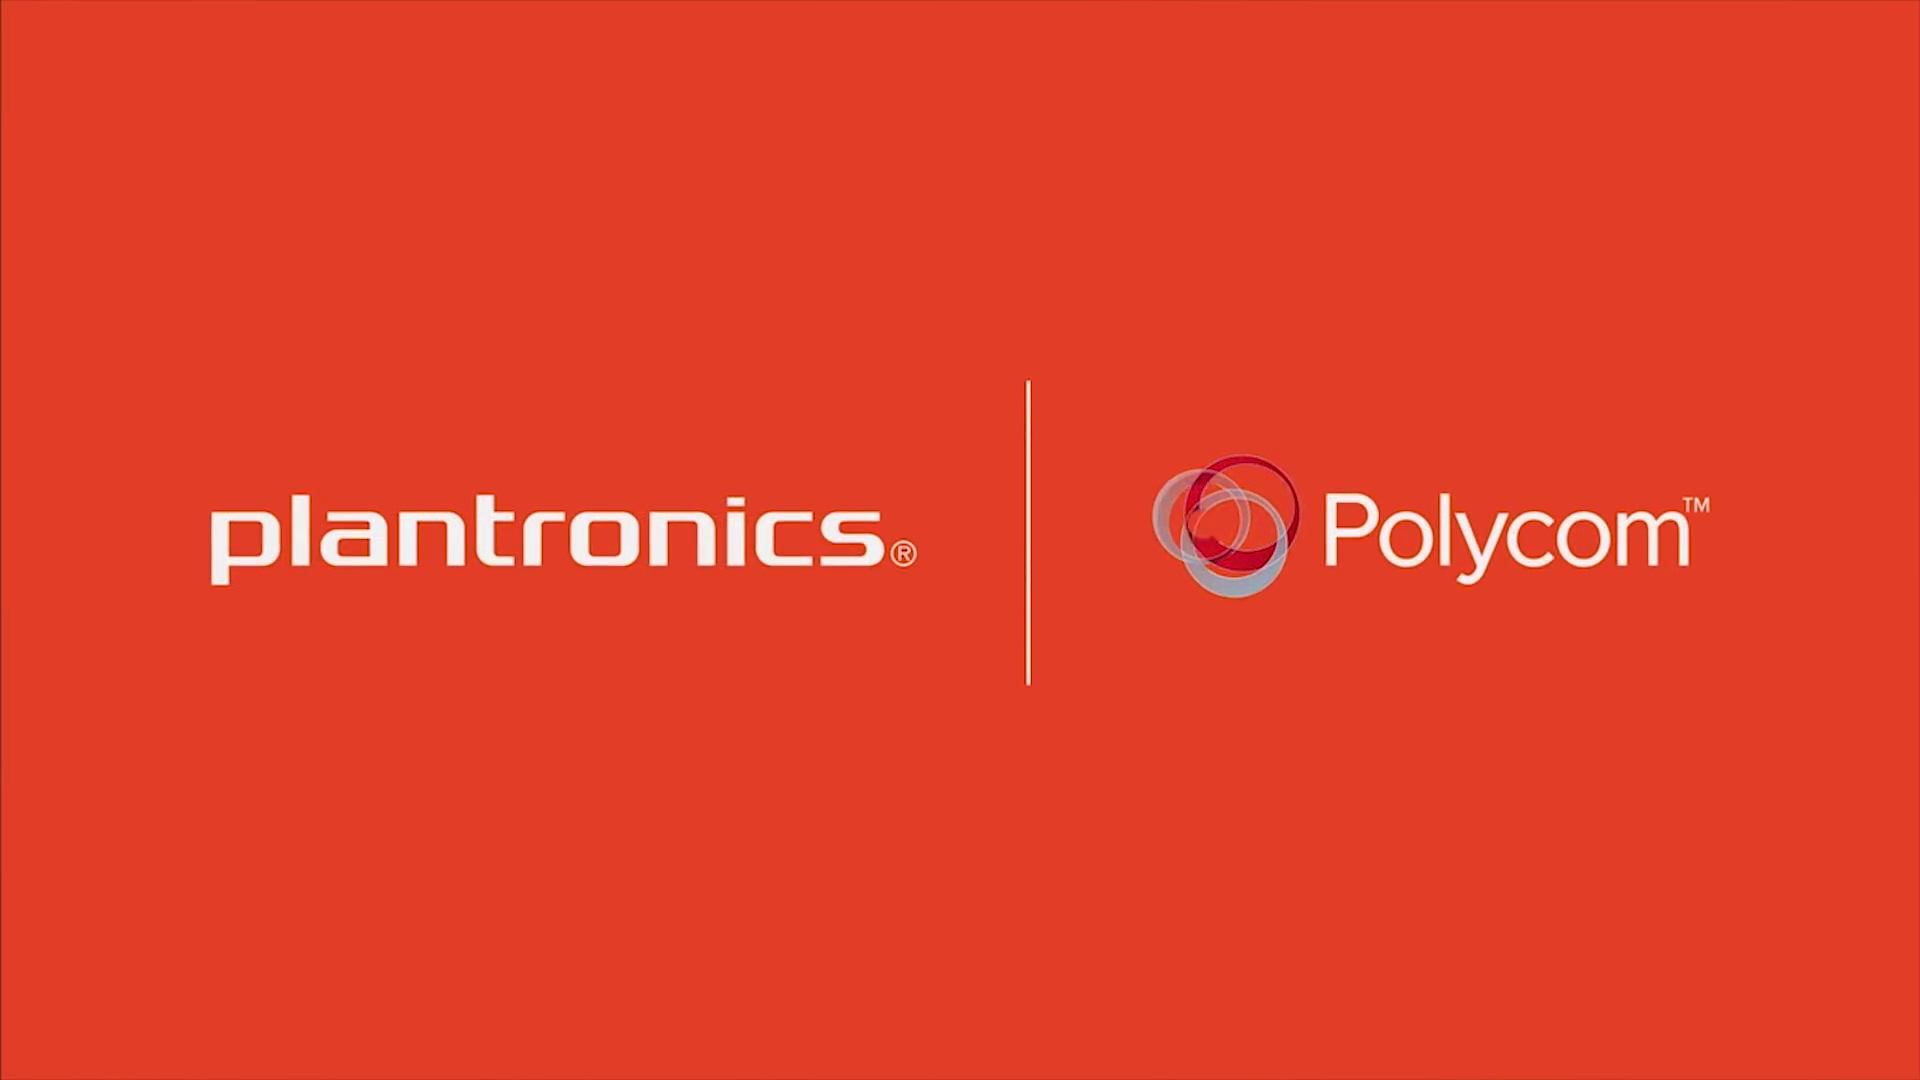 y2mate.com - Plantronics & Polycom Joining Forces - Better Together_s1aXsXlhFB4_1080p